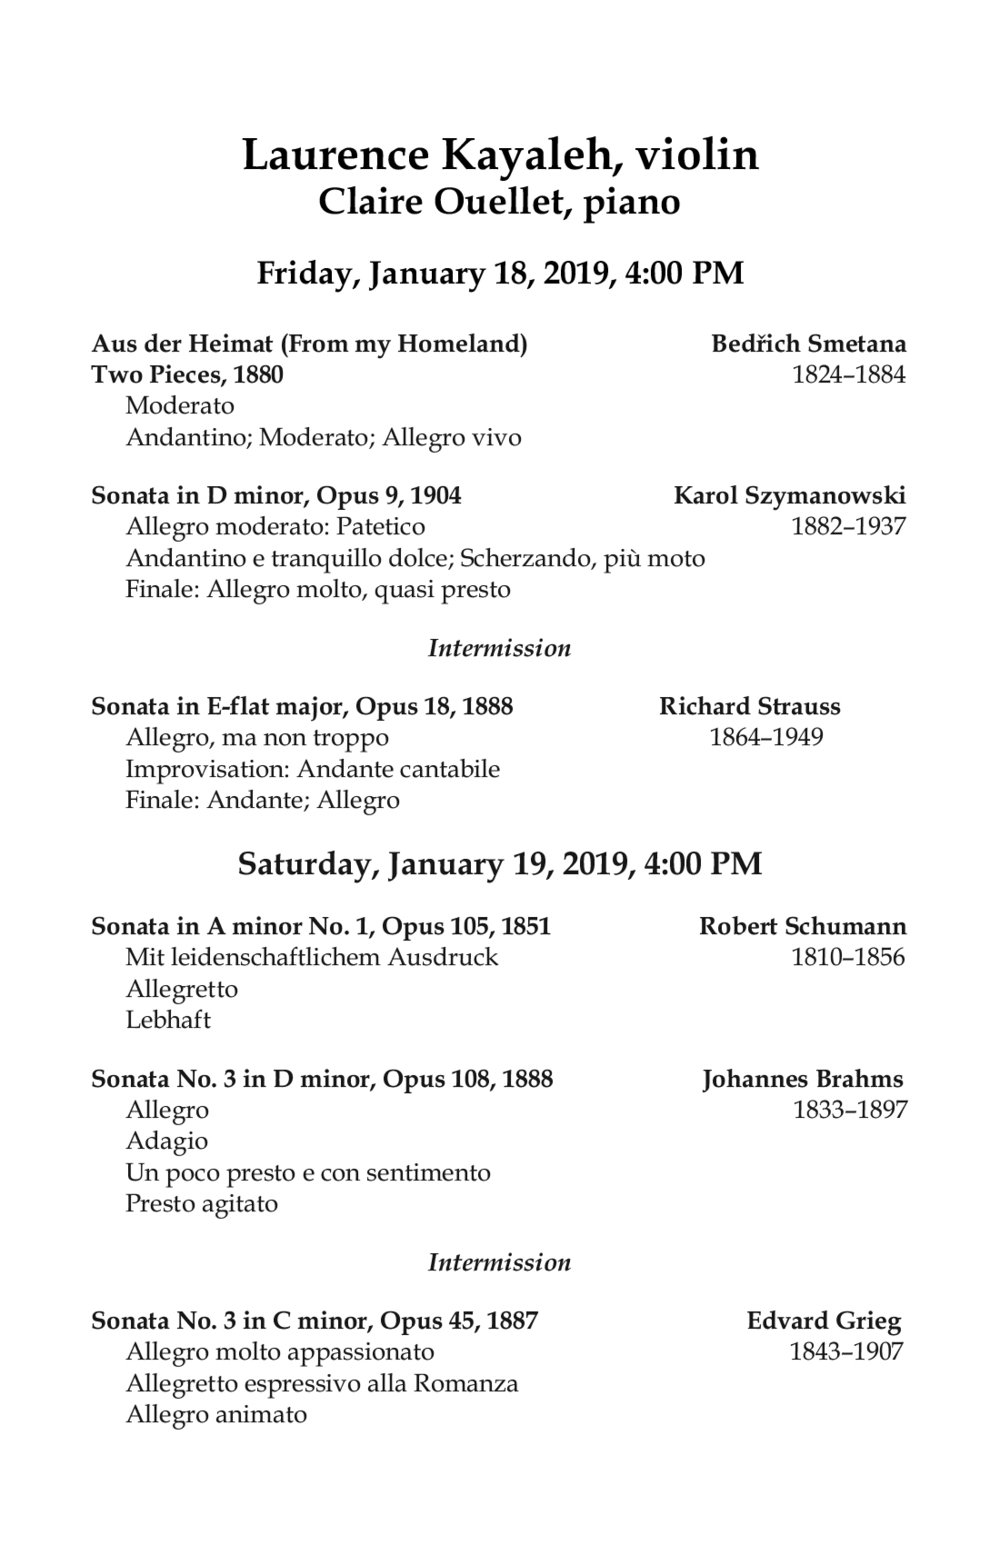 Promusica - program pages 2018-19-6.jpg